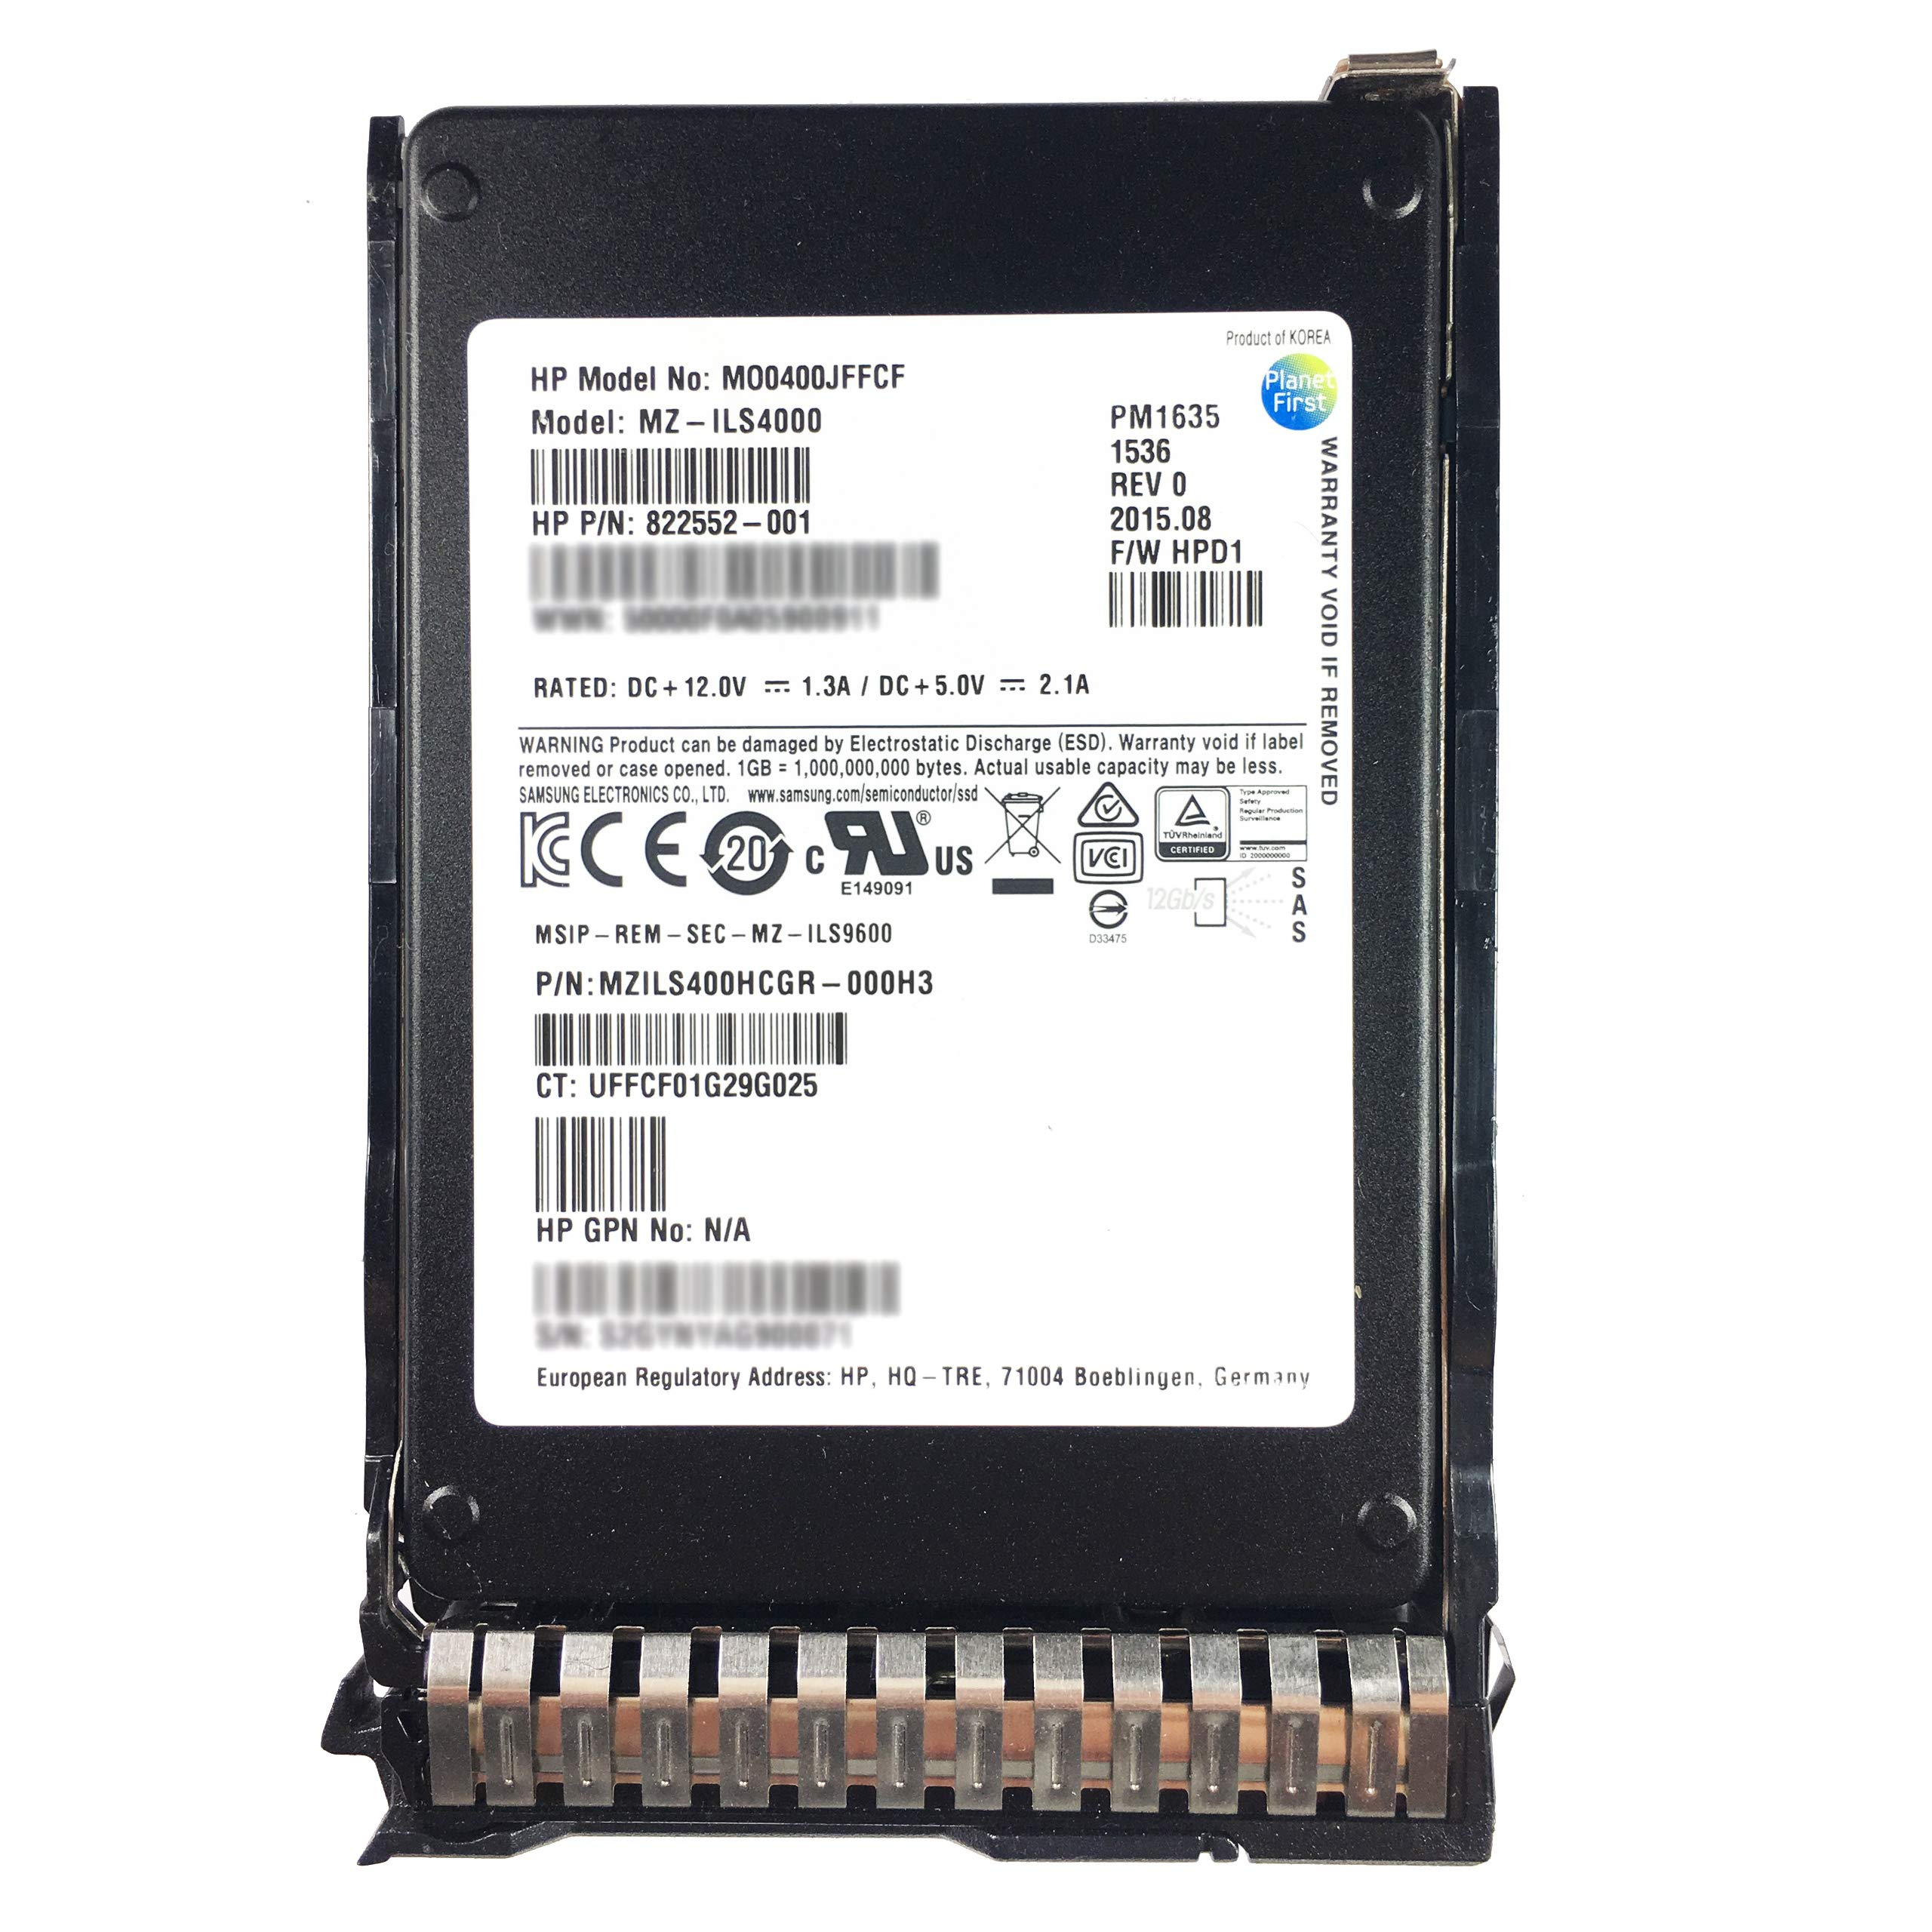 HPE 400GB MO0400JFFCF 822552-001 MZILS400HCGR-000H3 HPD1 SAS 2.5'' SFF by Hpe